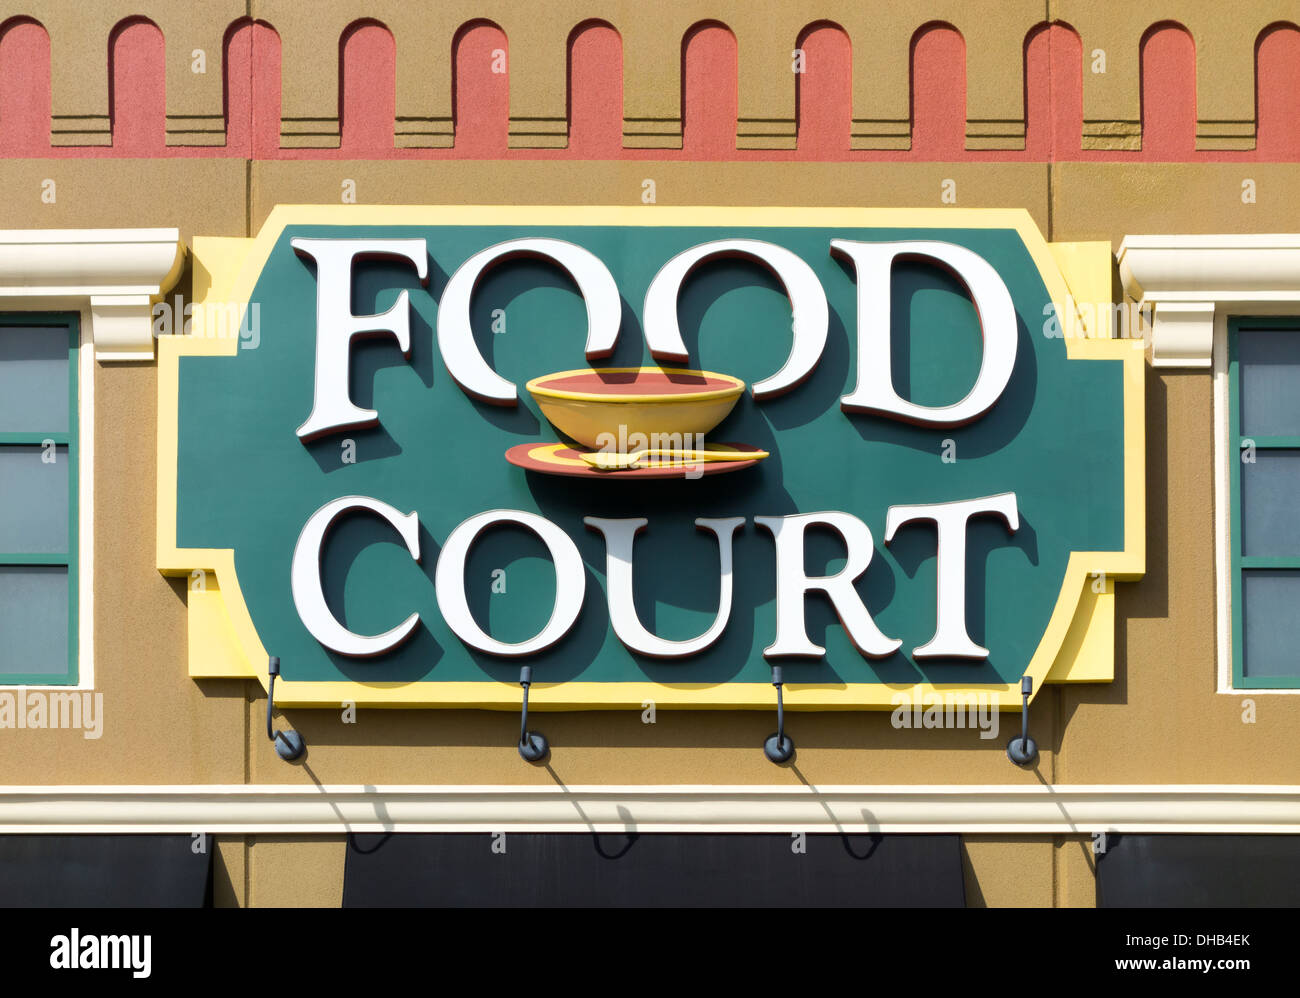 Colorful Food Court sign outside an outlet shopping mall. - Stock Image